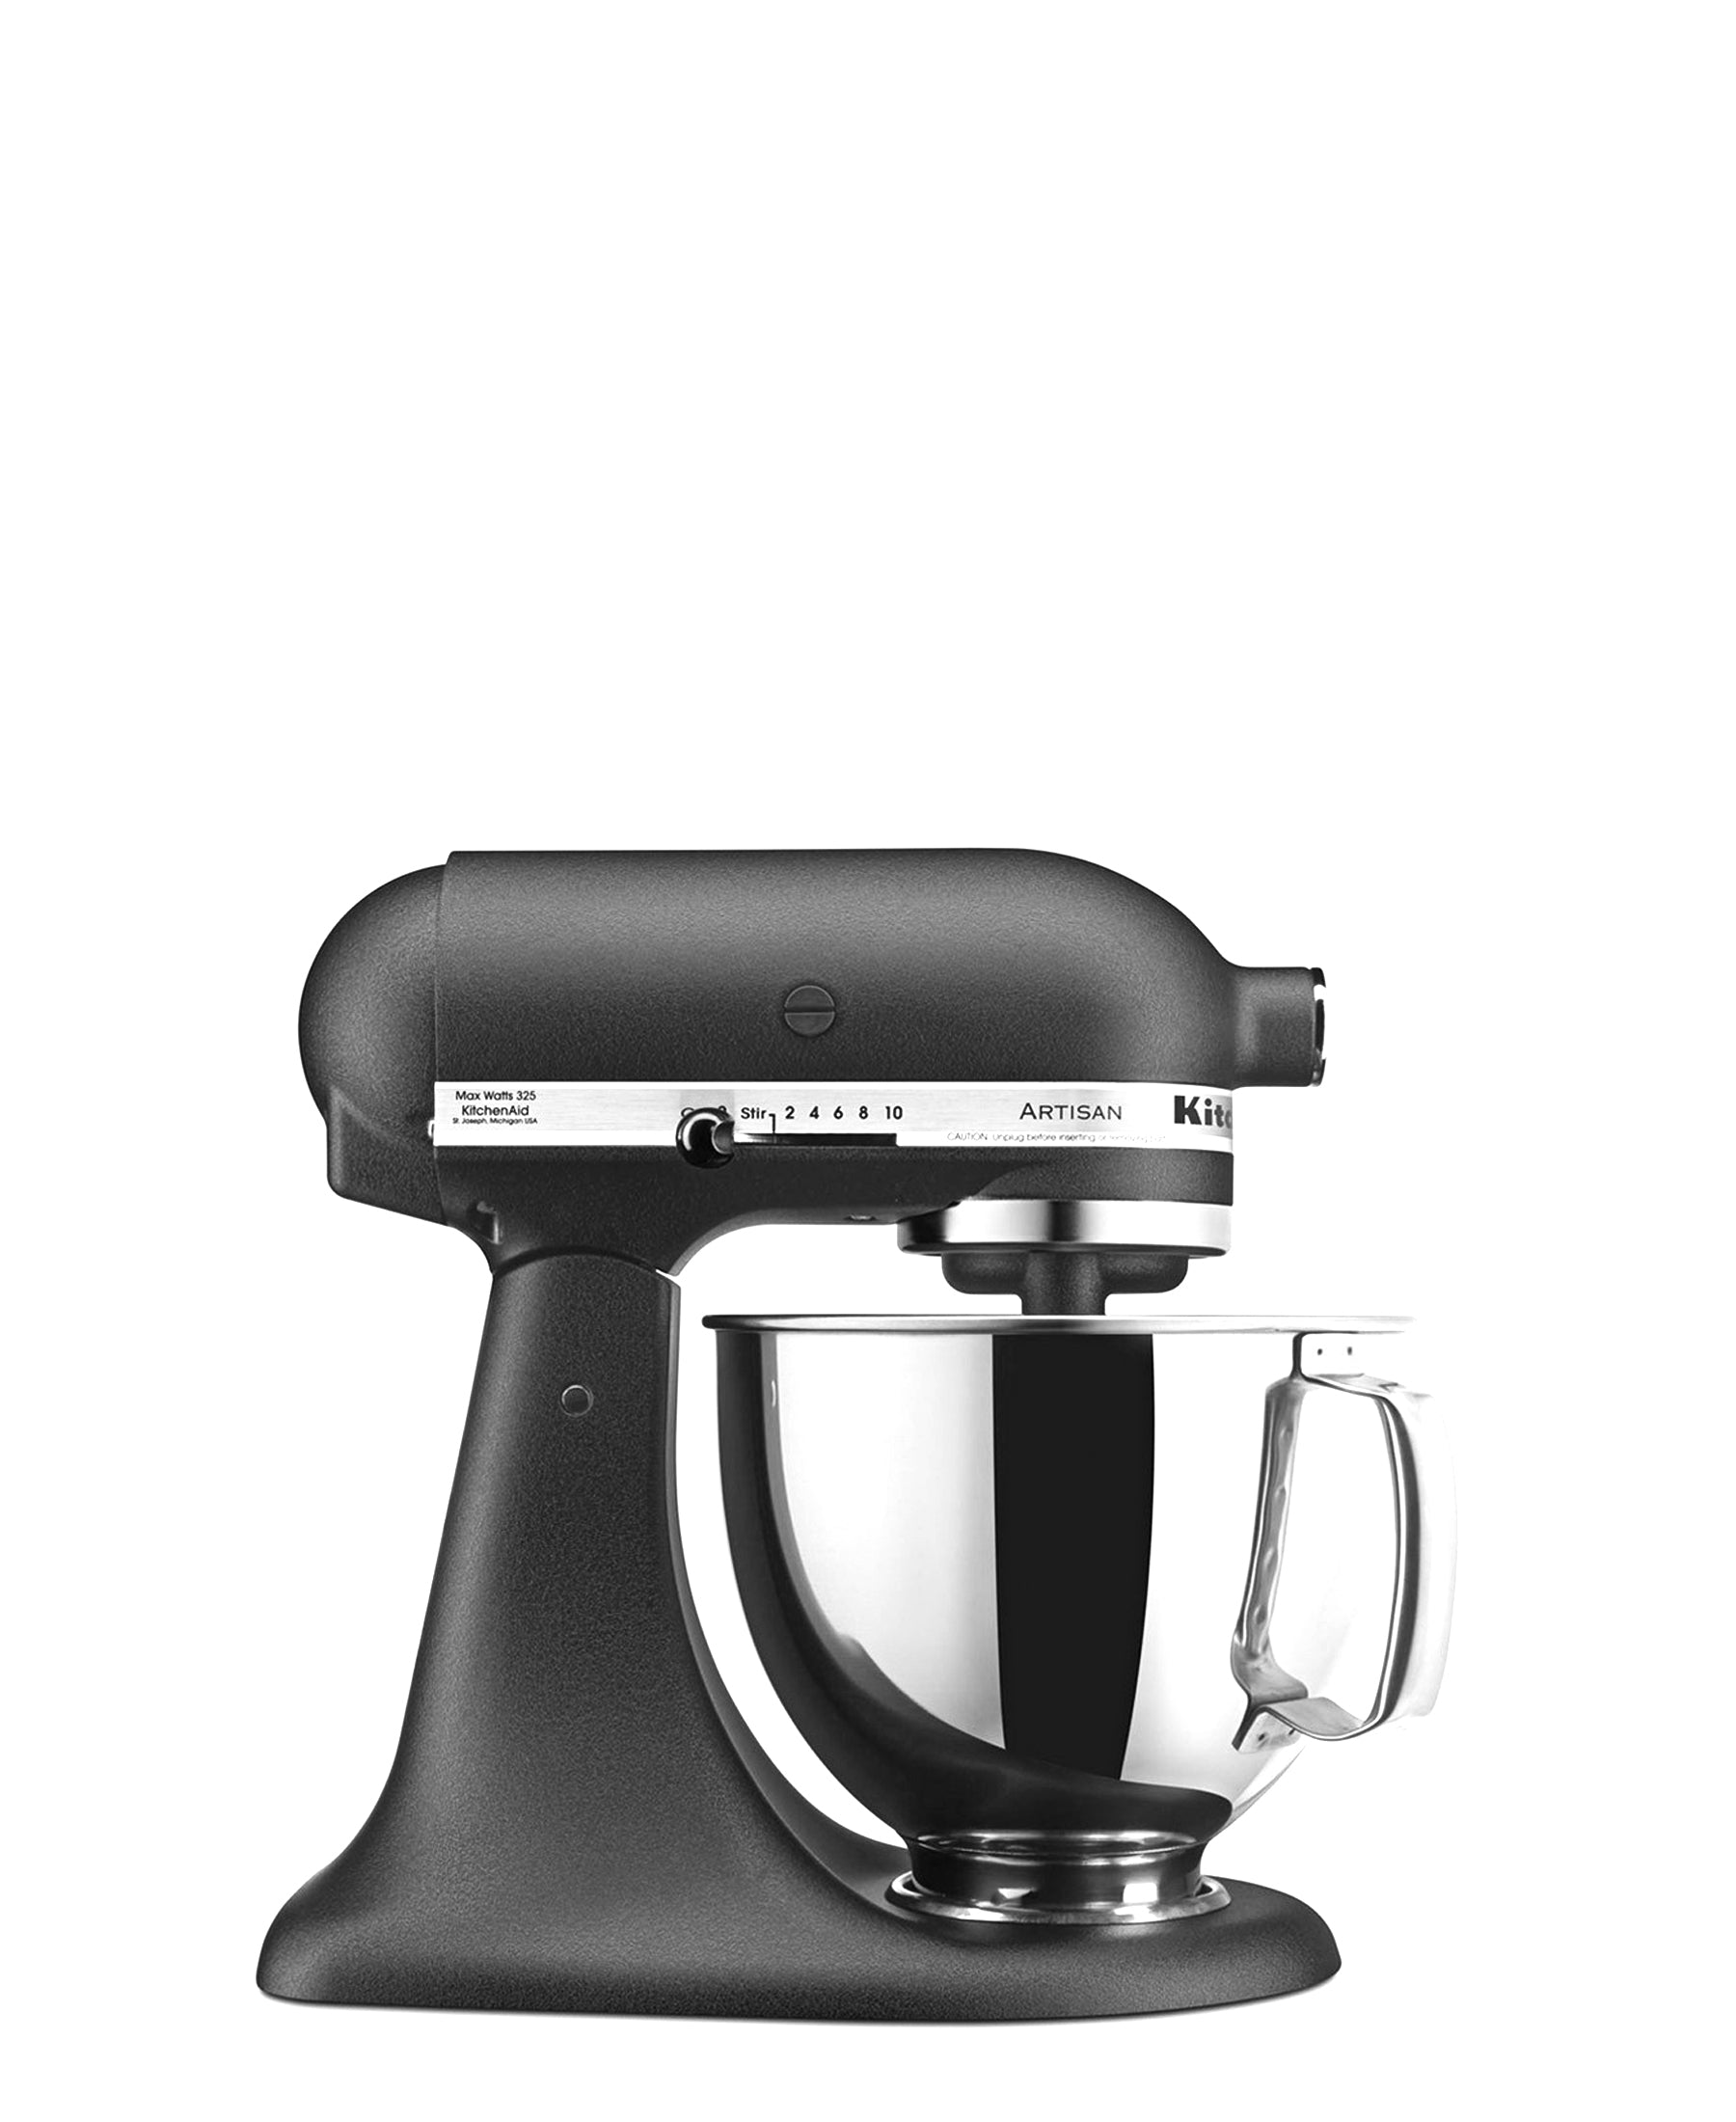 KitchenAid 4.8LT Stand Mixer + Stove Top Kettle - Cast Iron Black